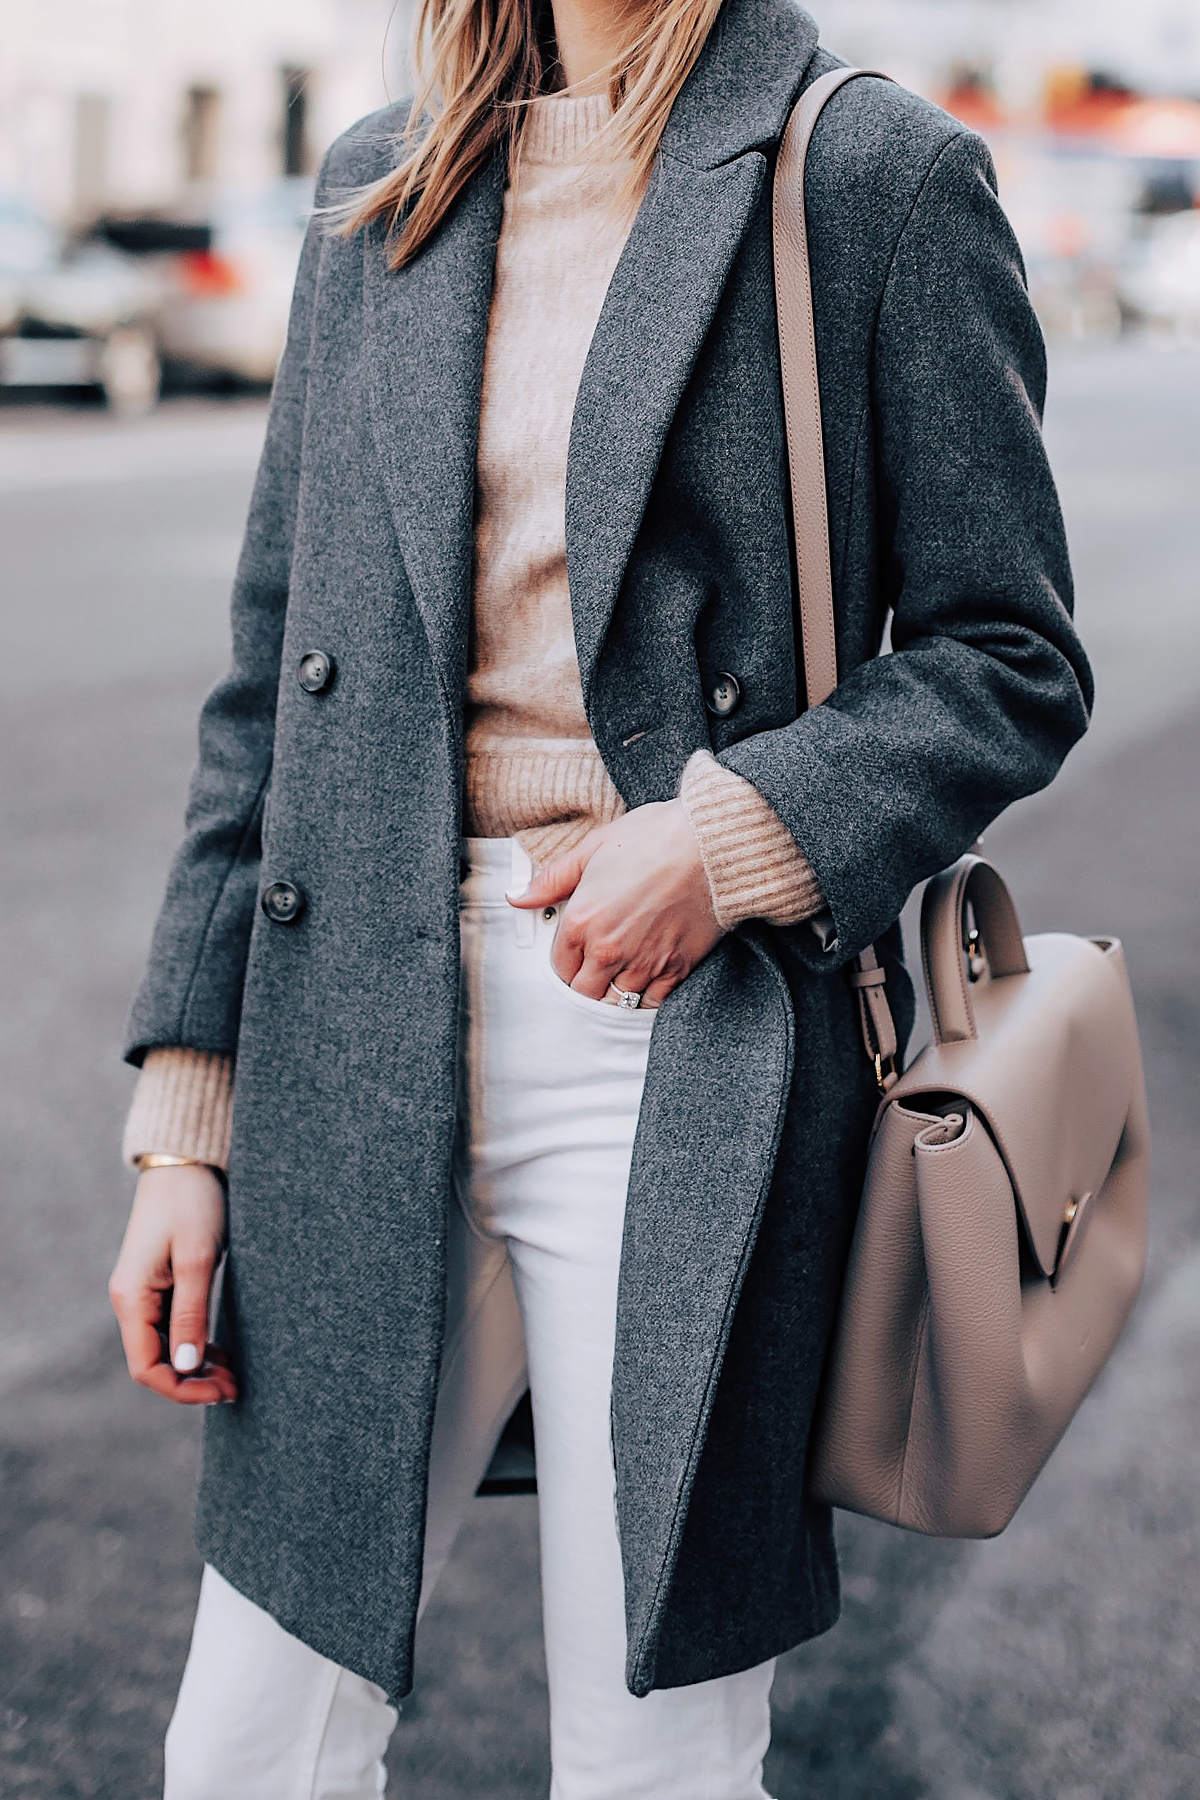 Blonde Woman Wearing HM Grey Wool Coat HM Camel Sweater White Jeans Polene Grey Handbag Fashion Jackson Fashion Blogger Street Style NYFW